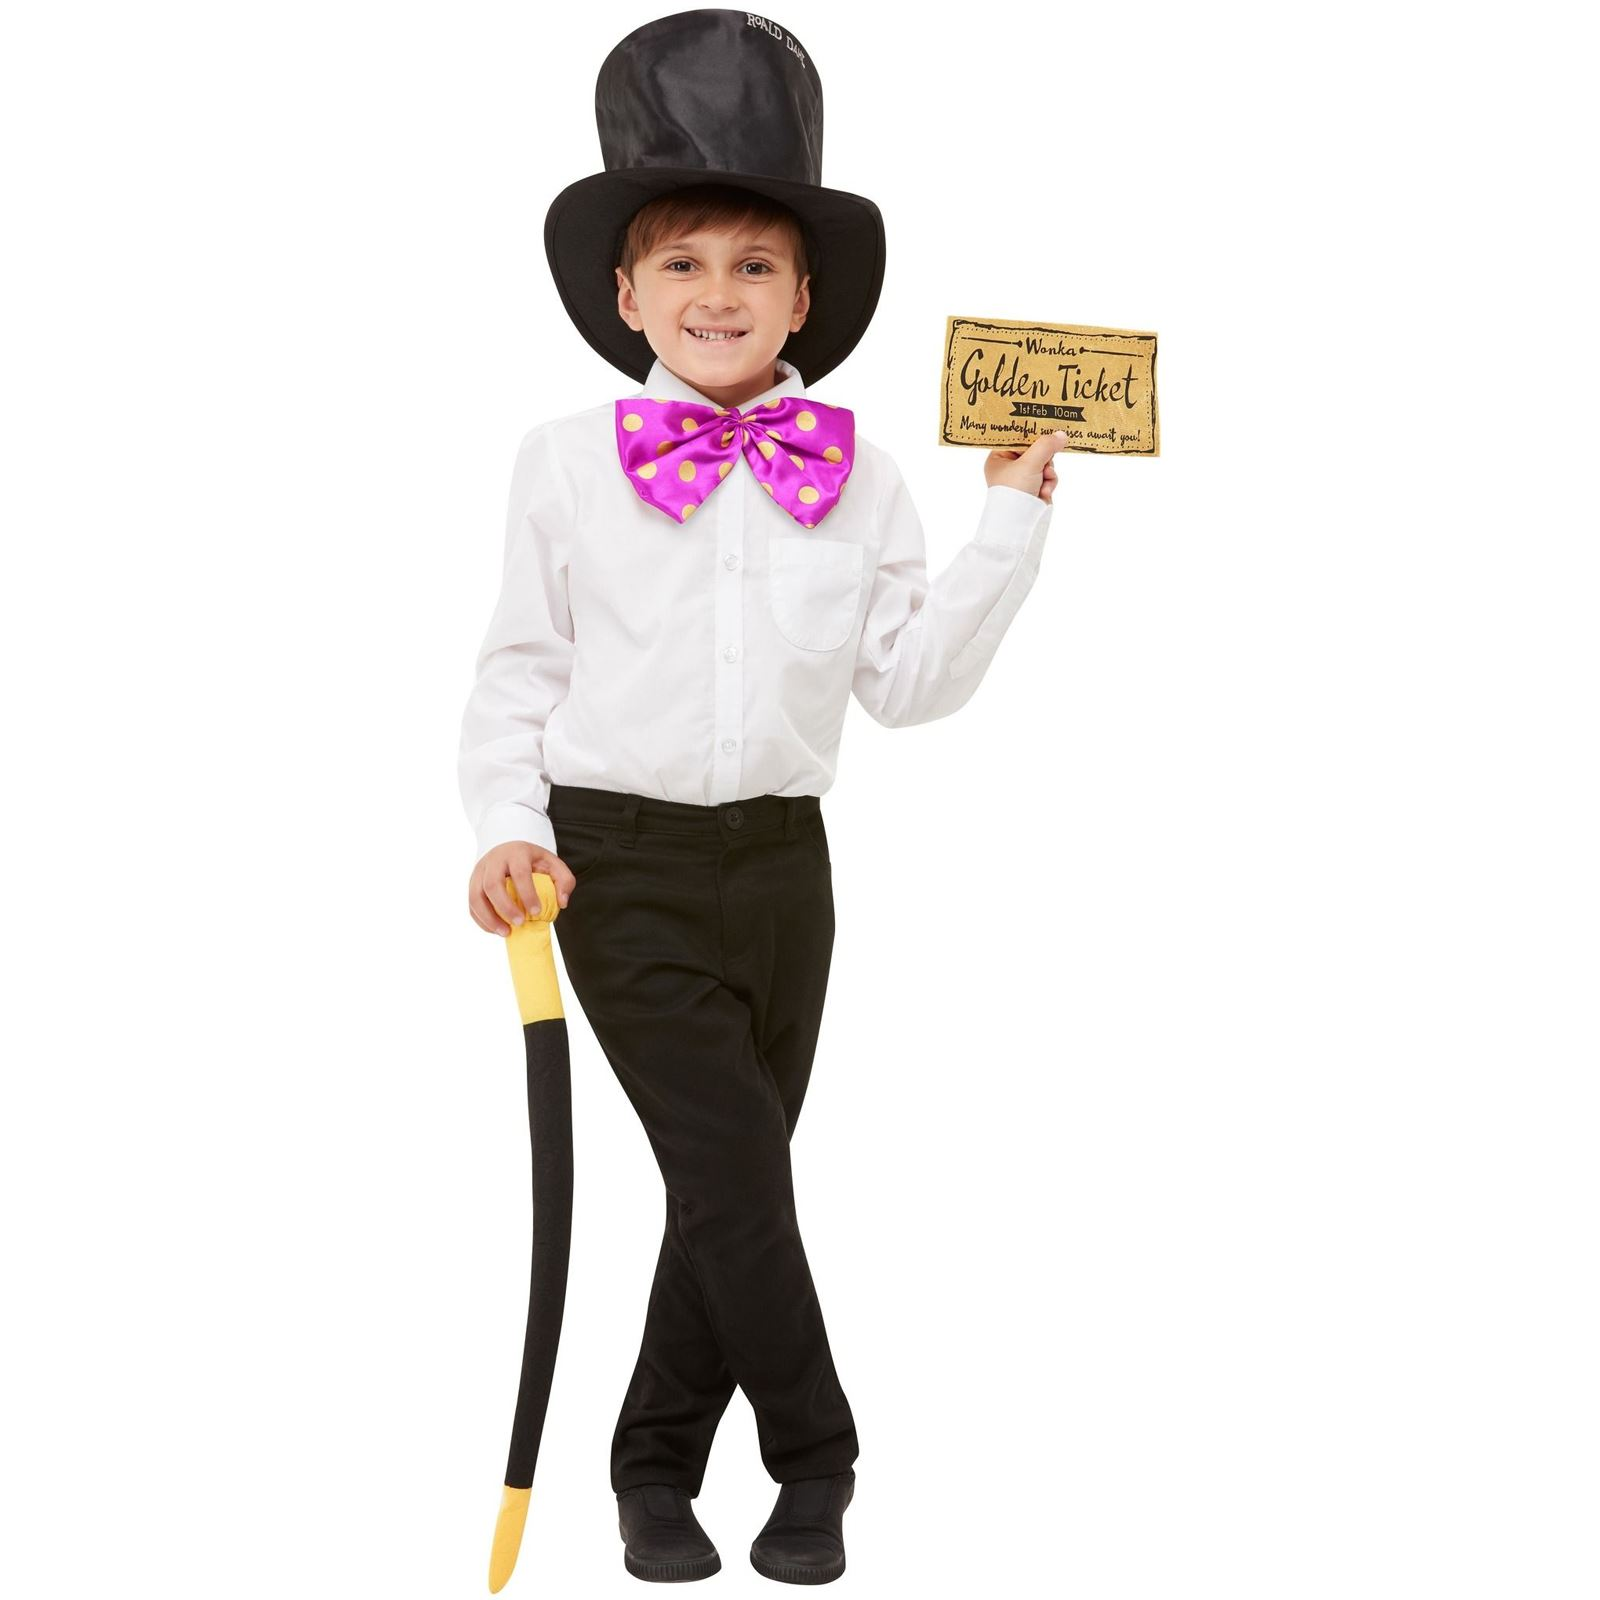 BOYS CHOCOLATE FACTORY COSTUME WILLY WONKA FANCY WORLD BOOK DAY WEEK OUTFIT 4-12